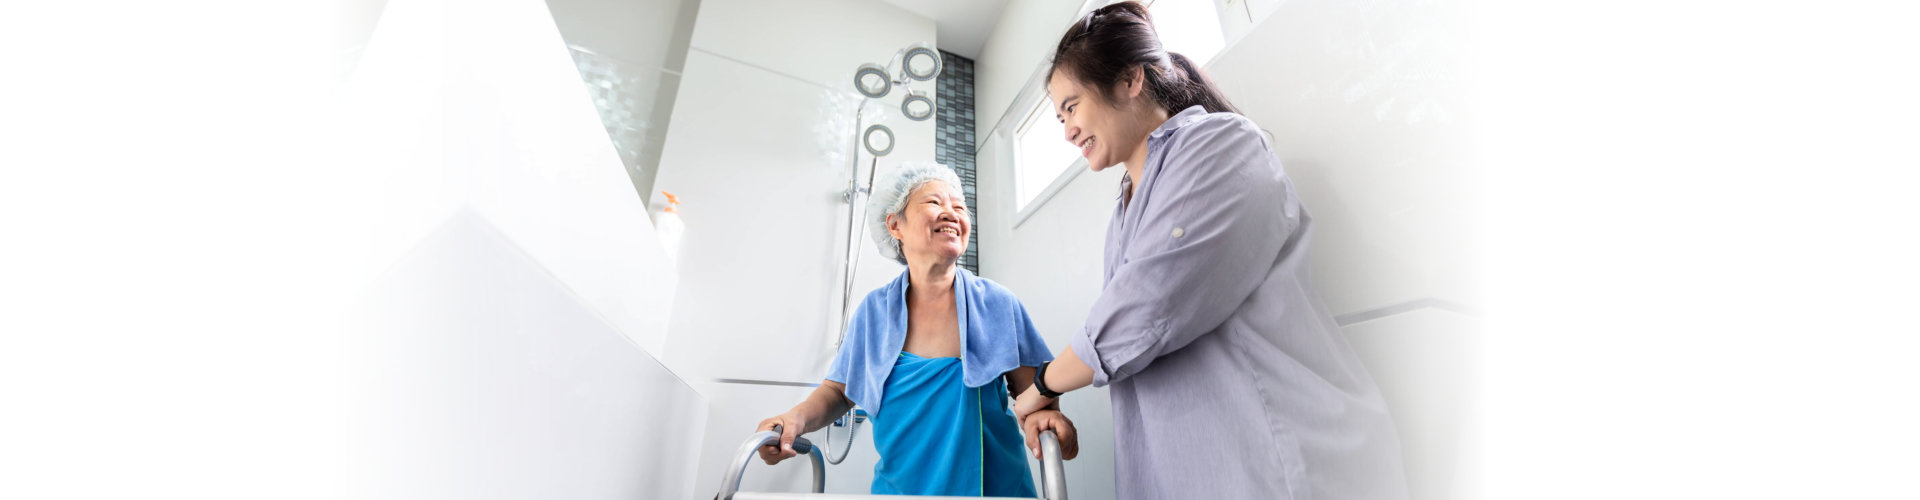 caregiver assisting an old lady